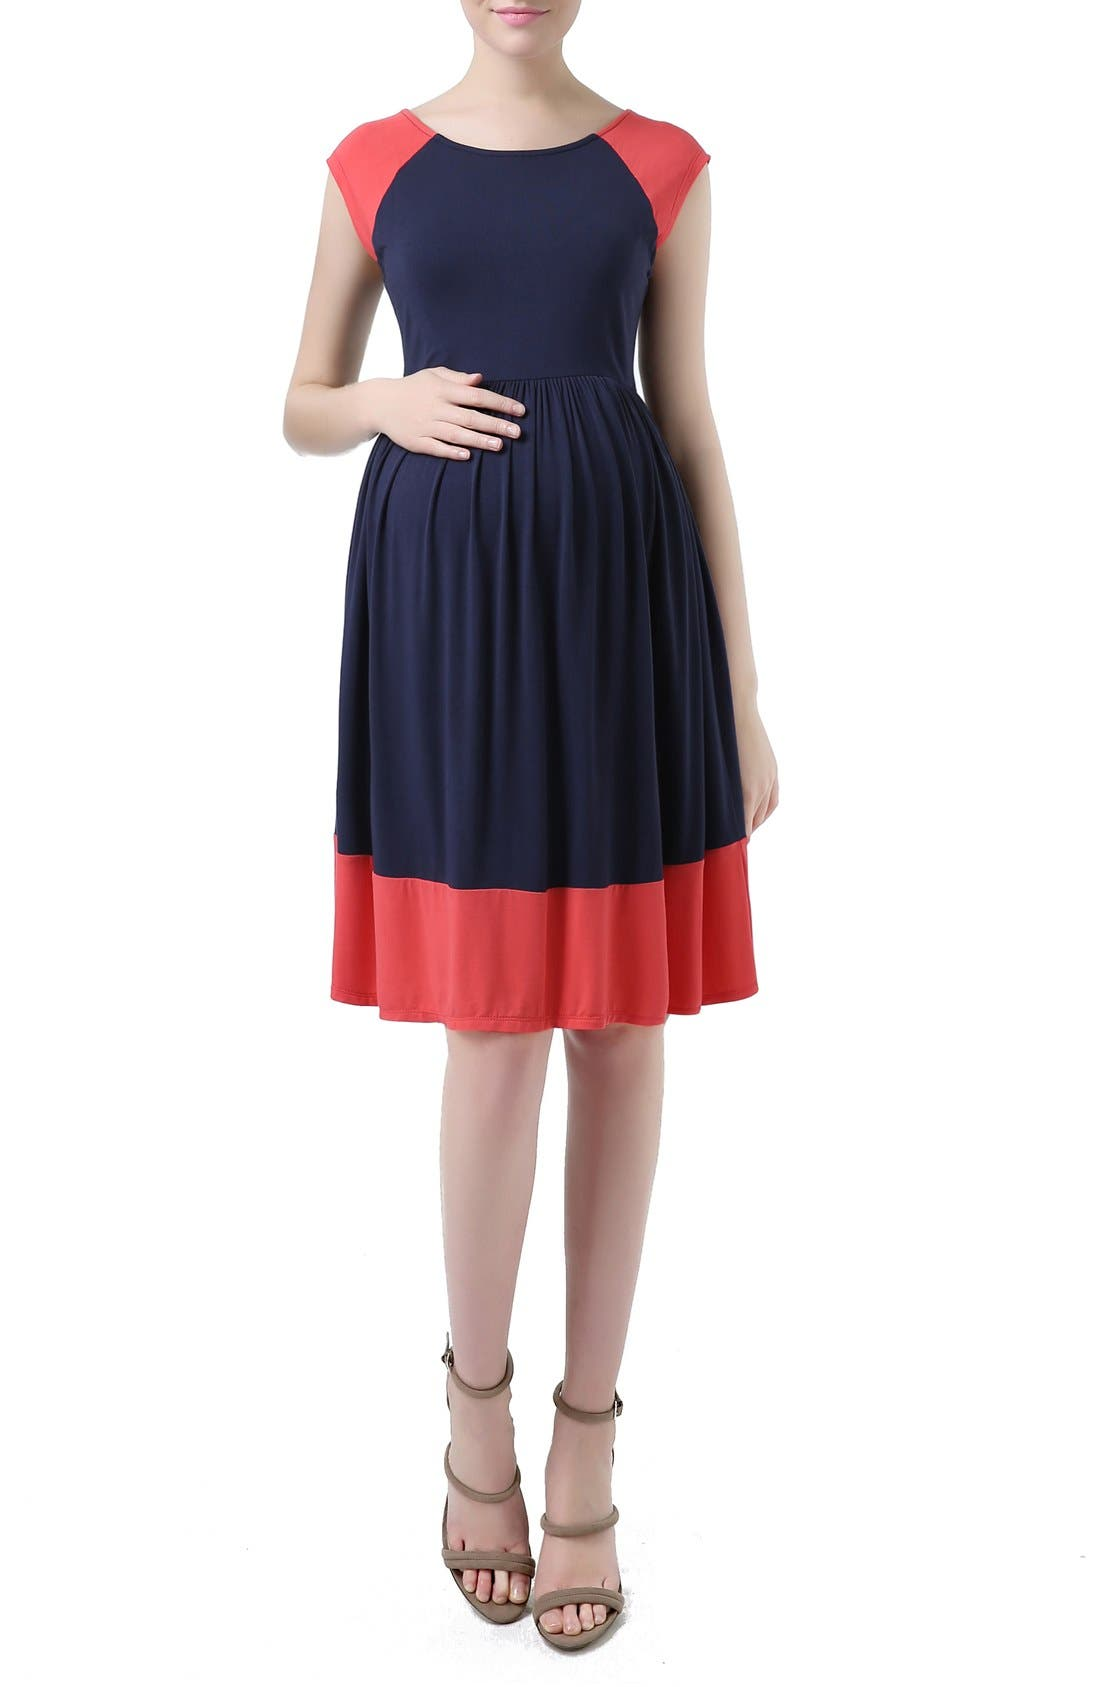 KIMI AND KAI 'Andie' Colorblock Maternity Skater Dress